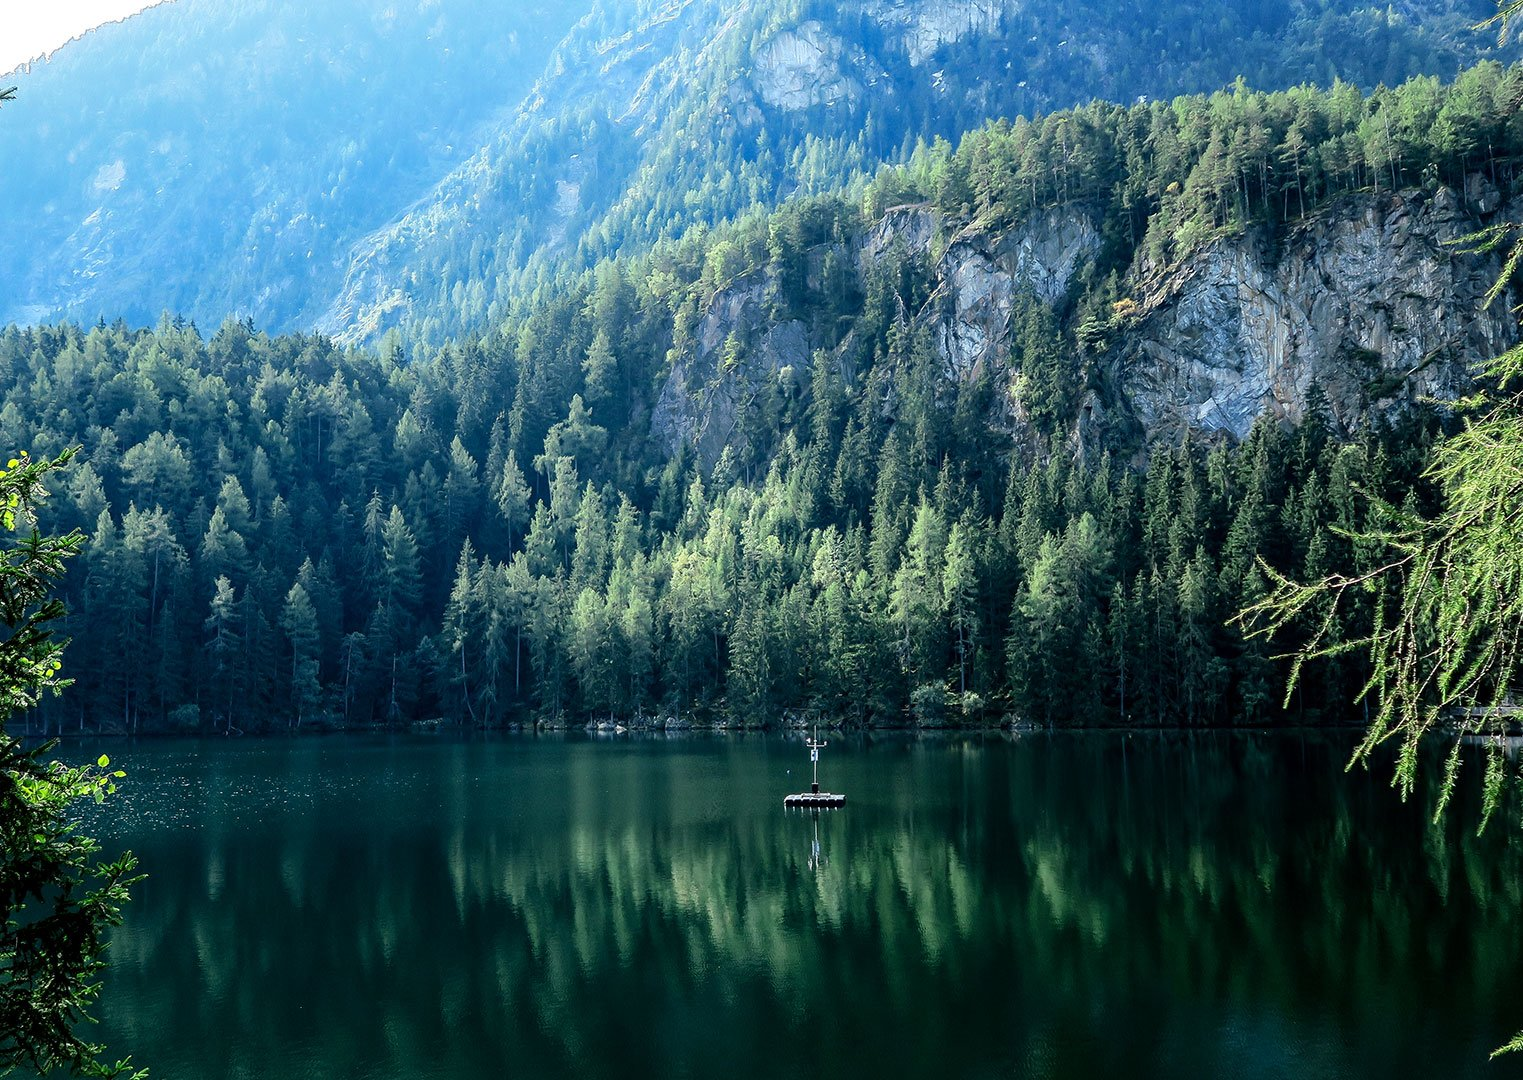 Stock Photo of a mountain and lake from Life of Pix